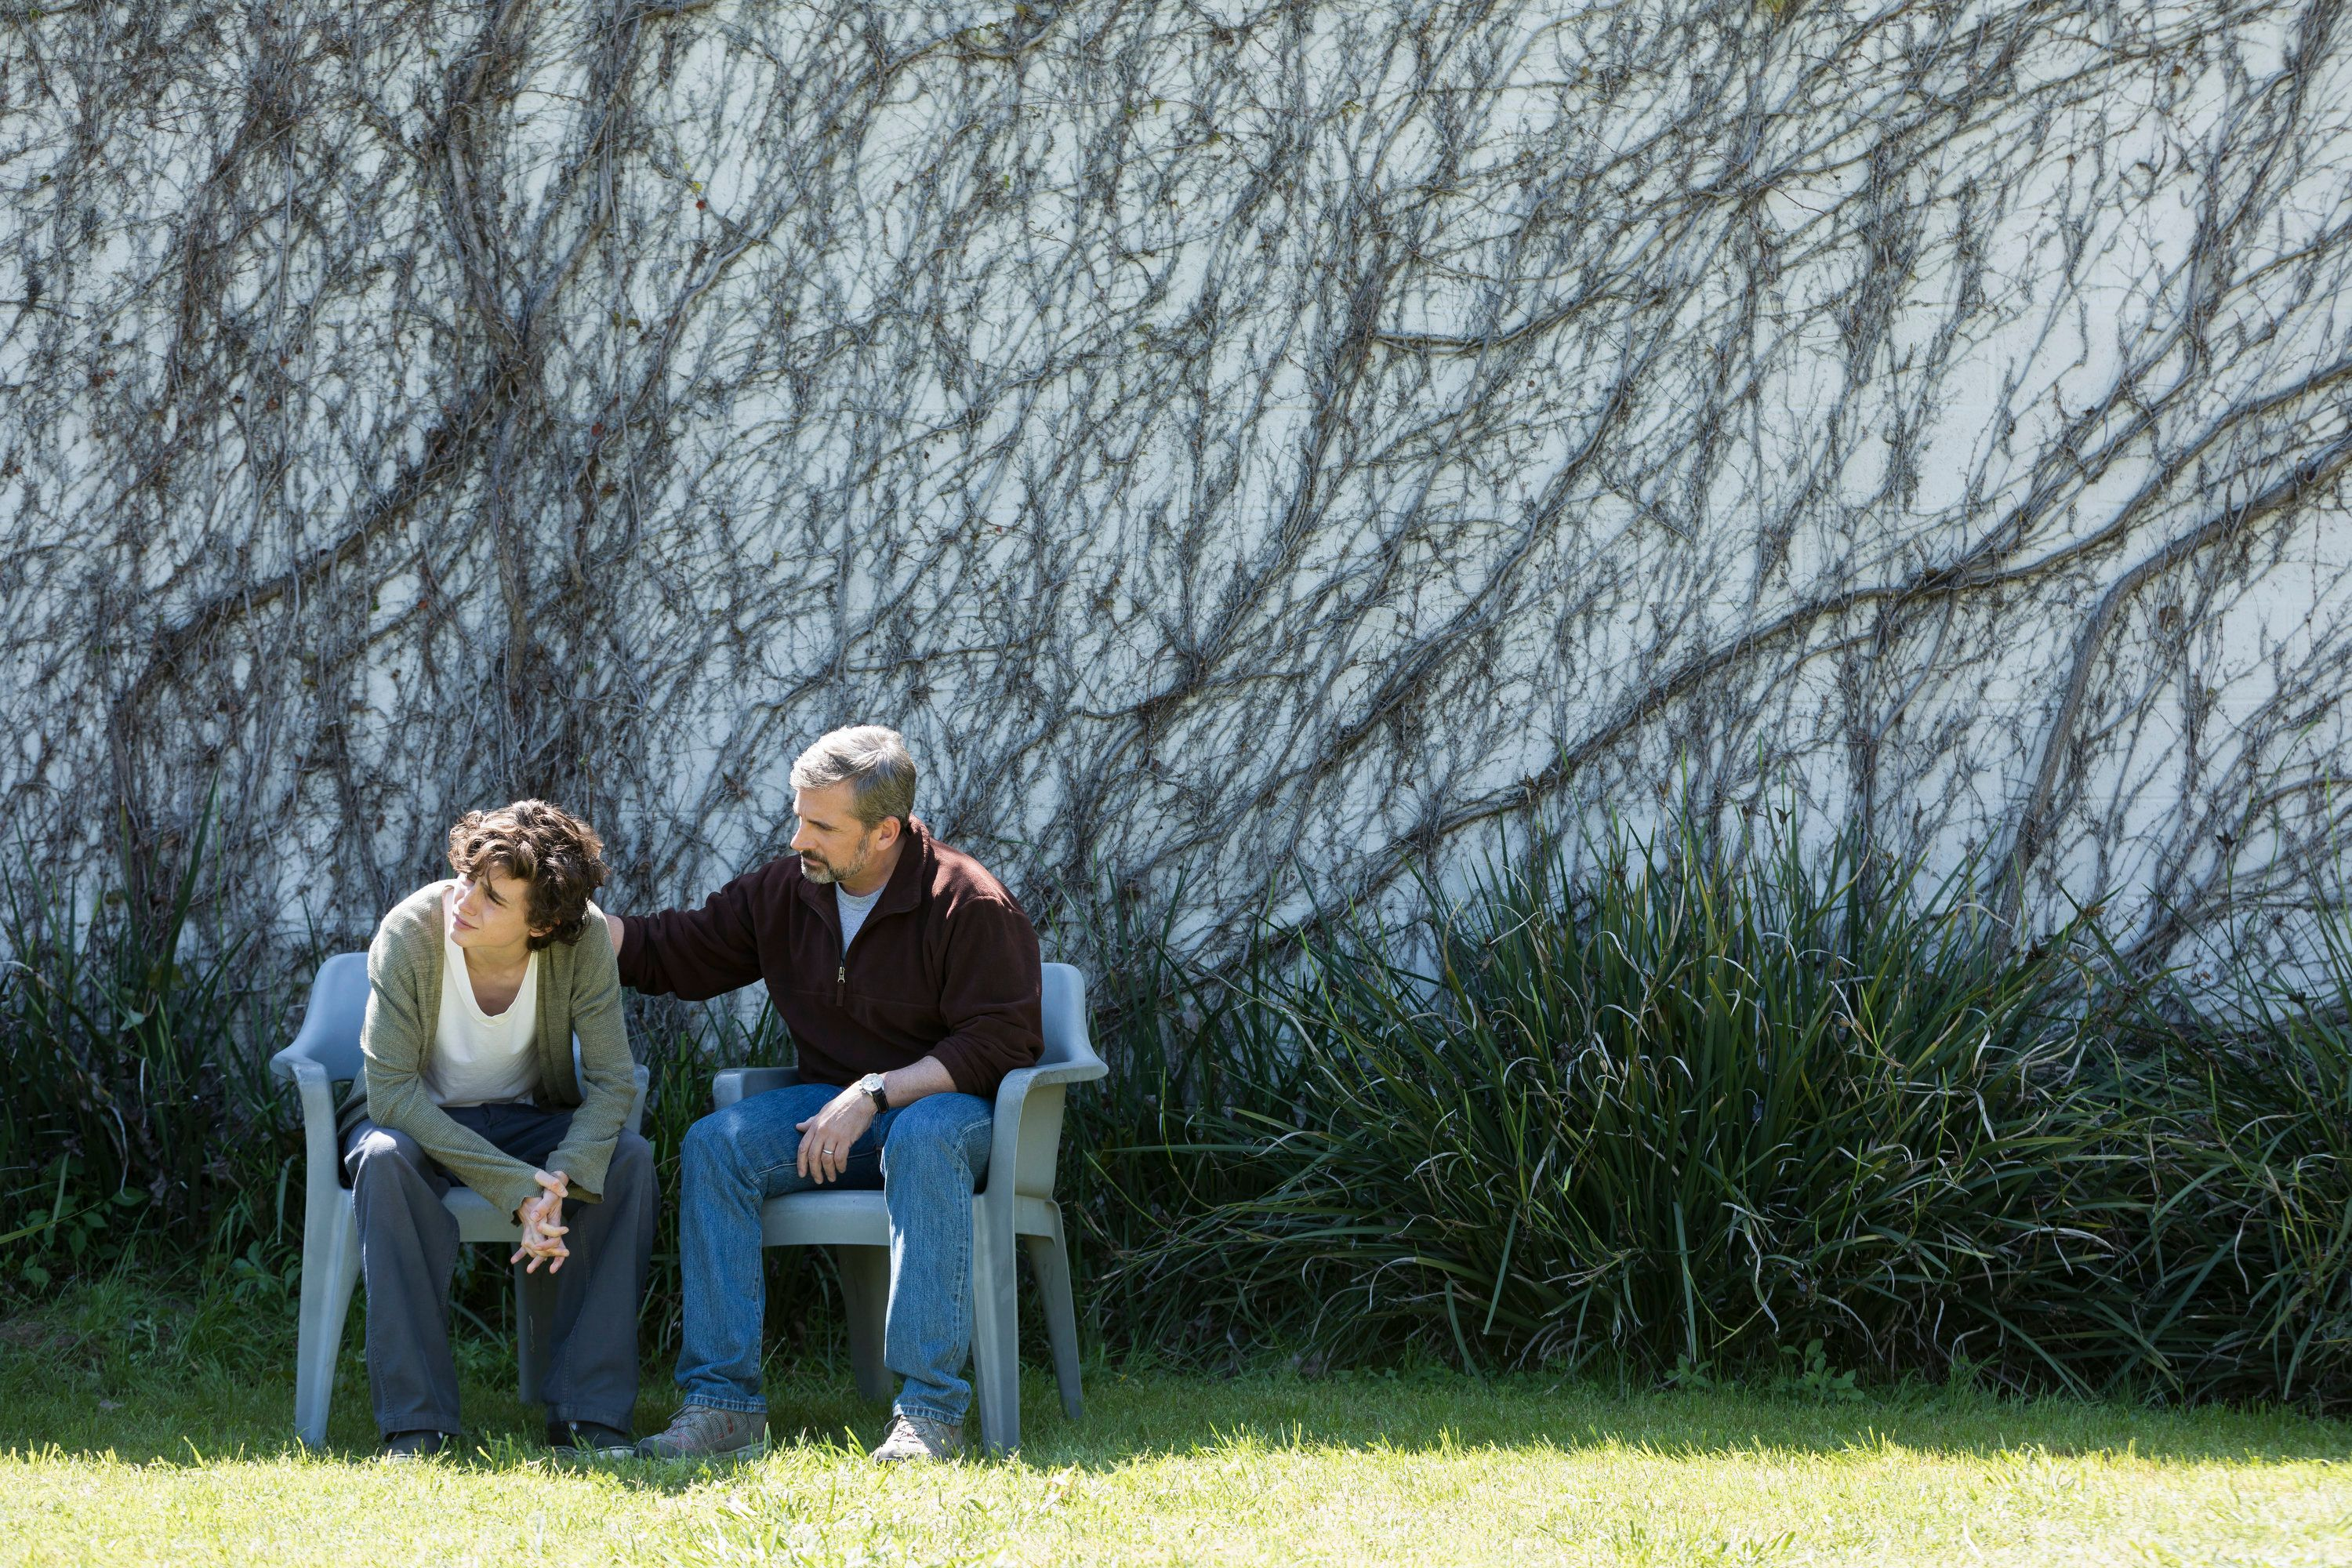 huffingtonpost.com - Melissa Jeltsen - 'Beautiful Boy' Is A Cathartic Gift For Families Like Mine